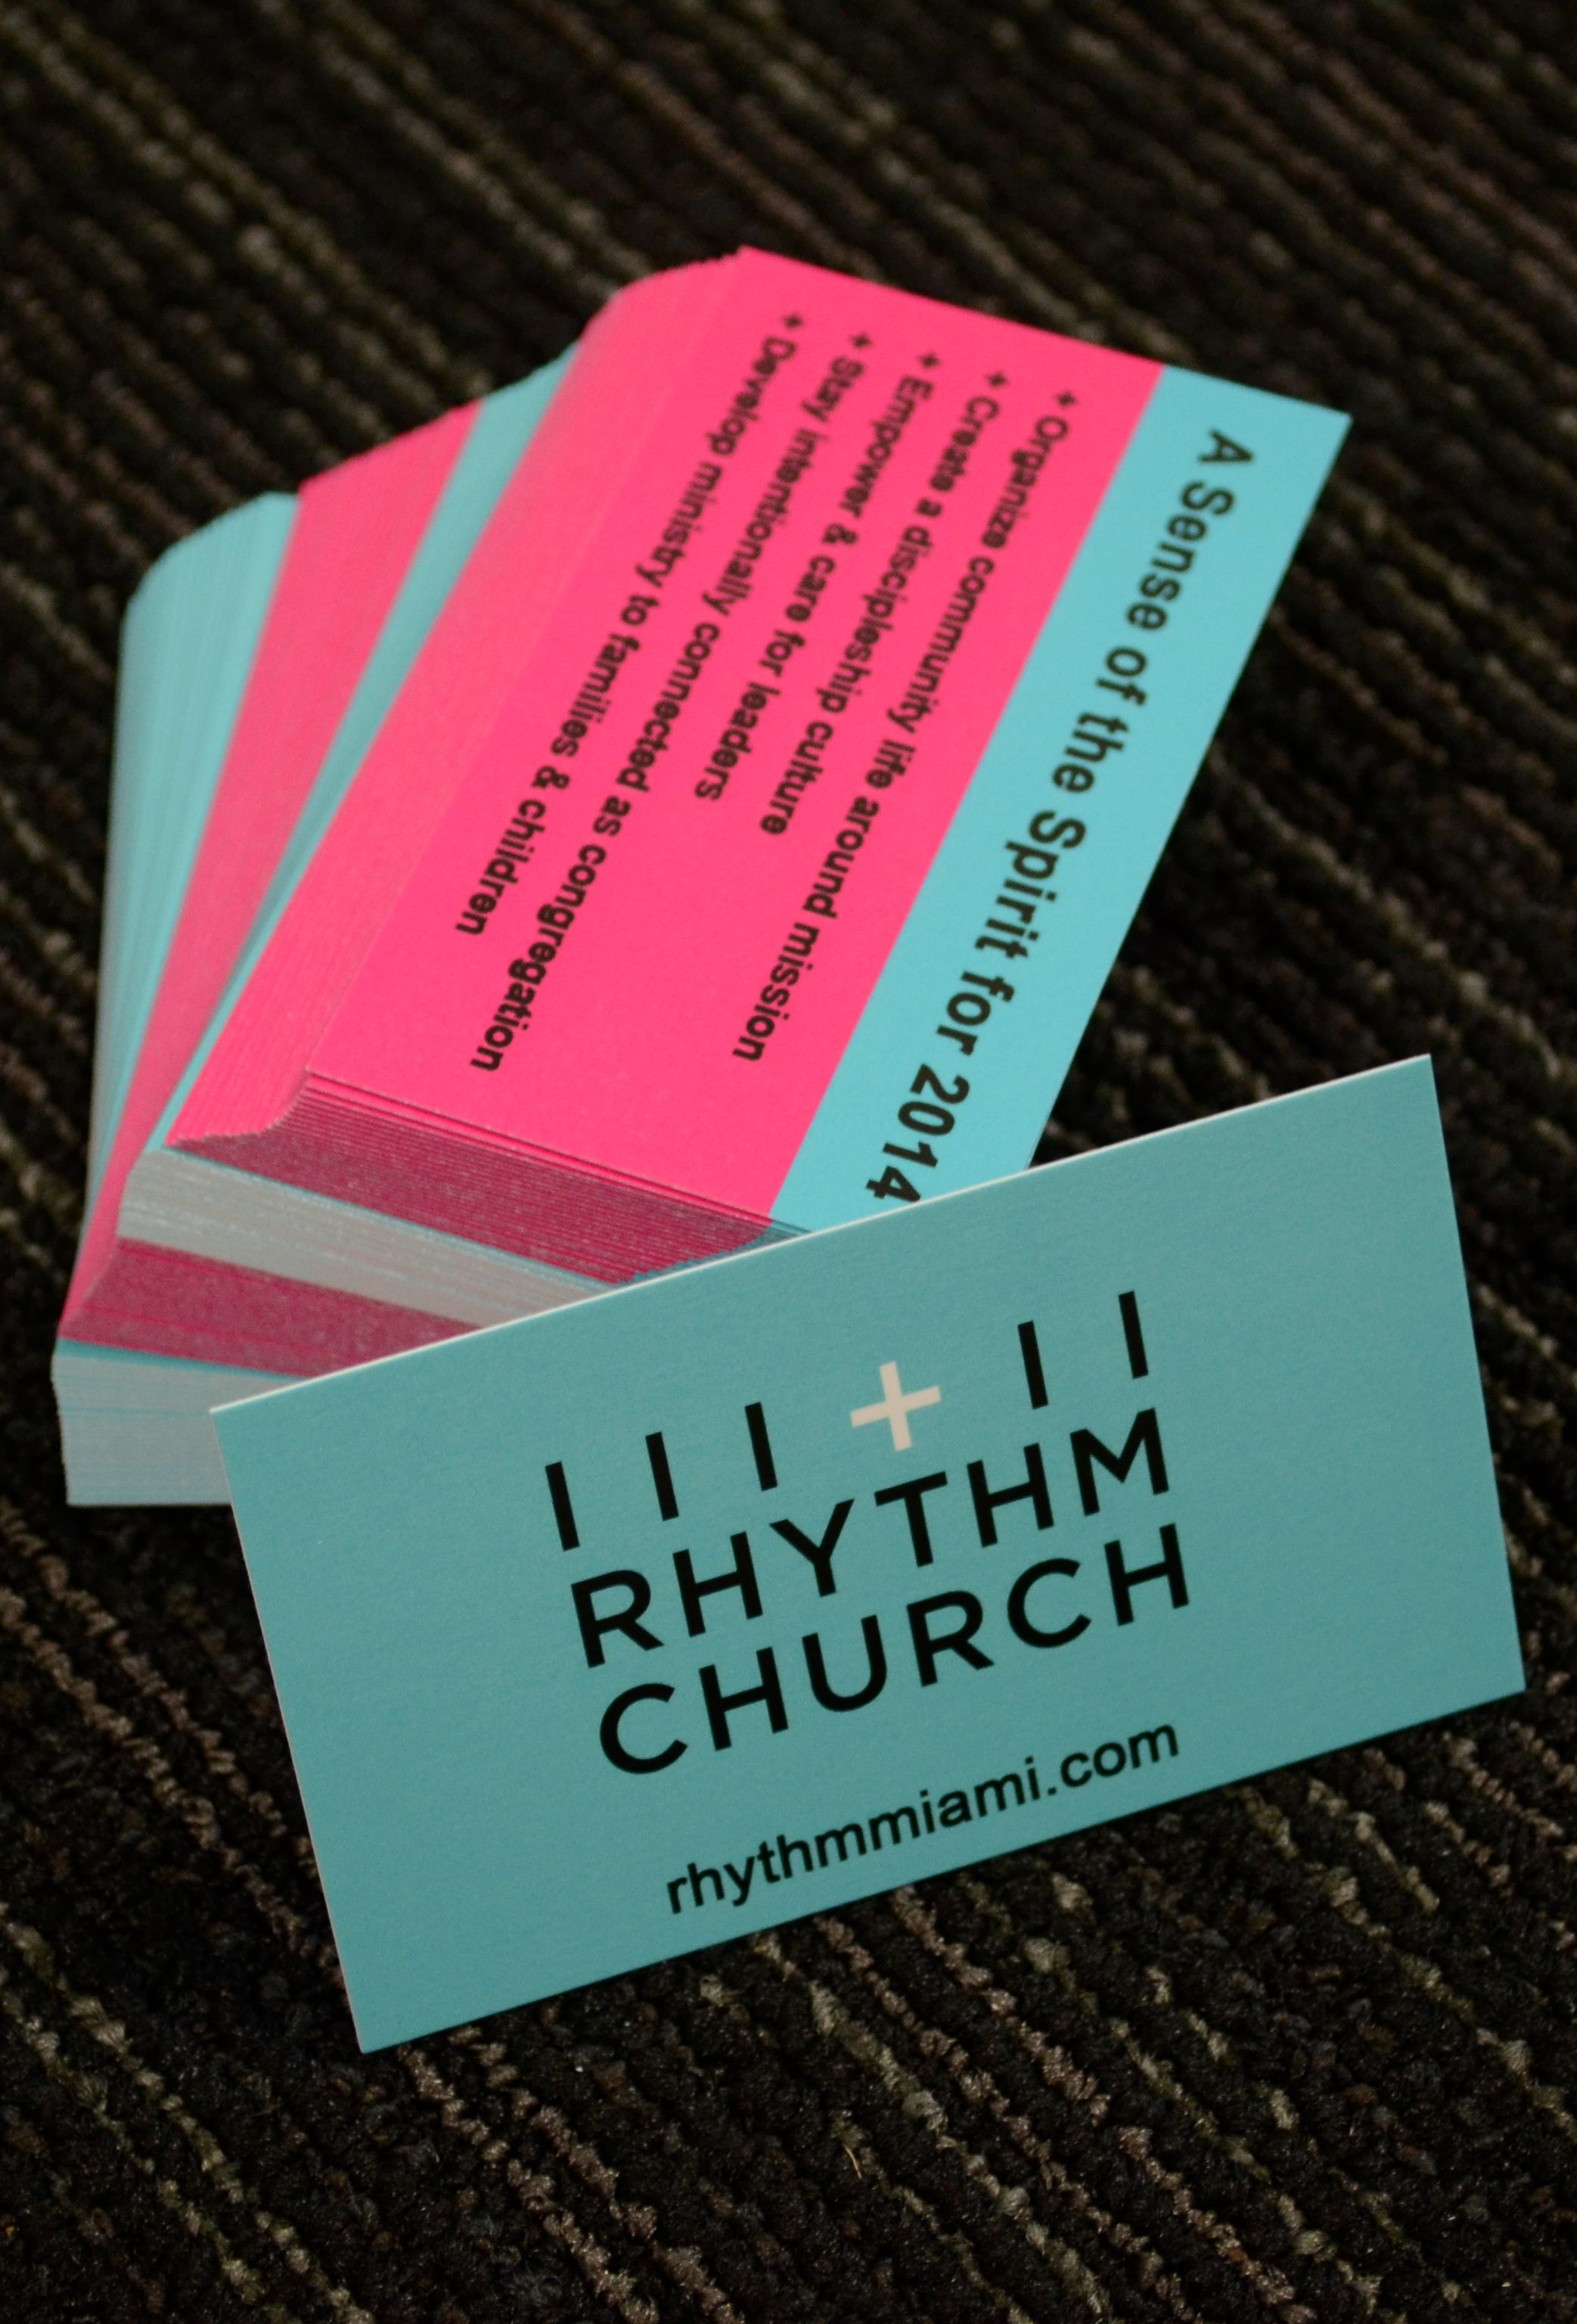 Church business cards Printing and Branding